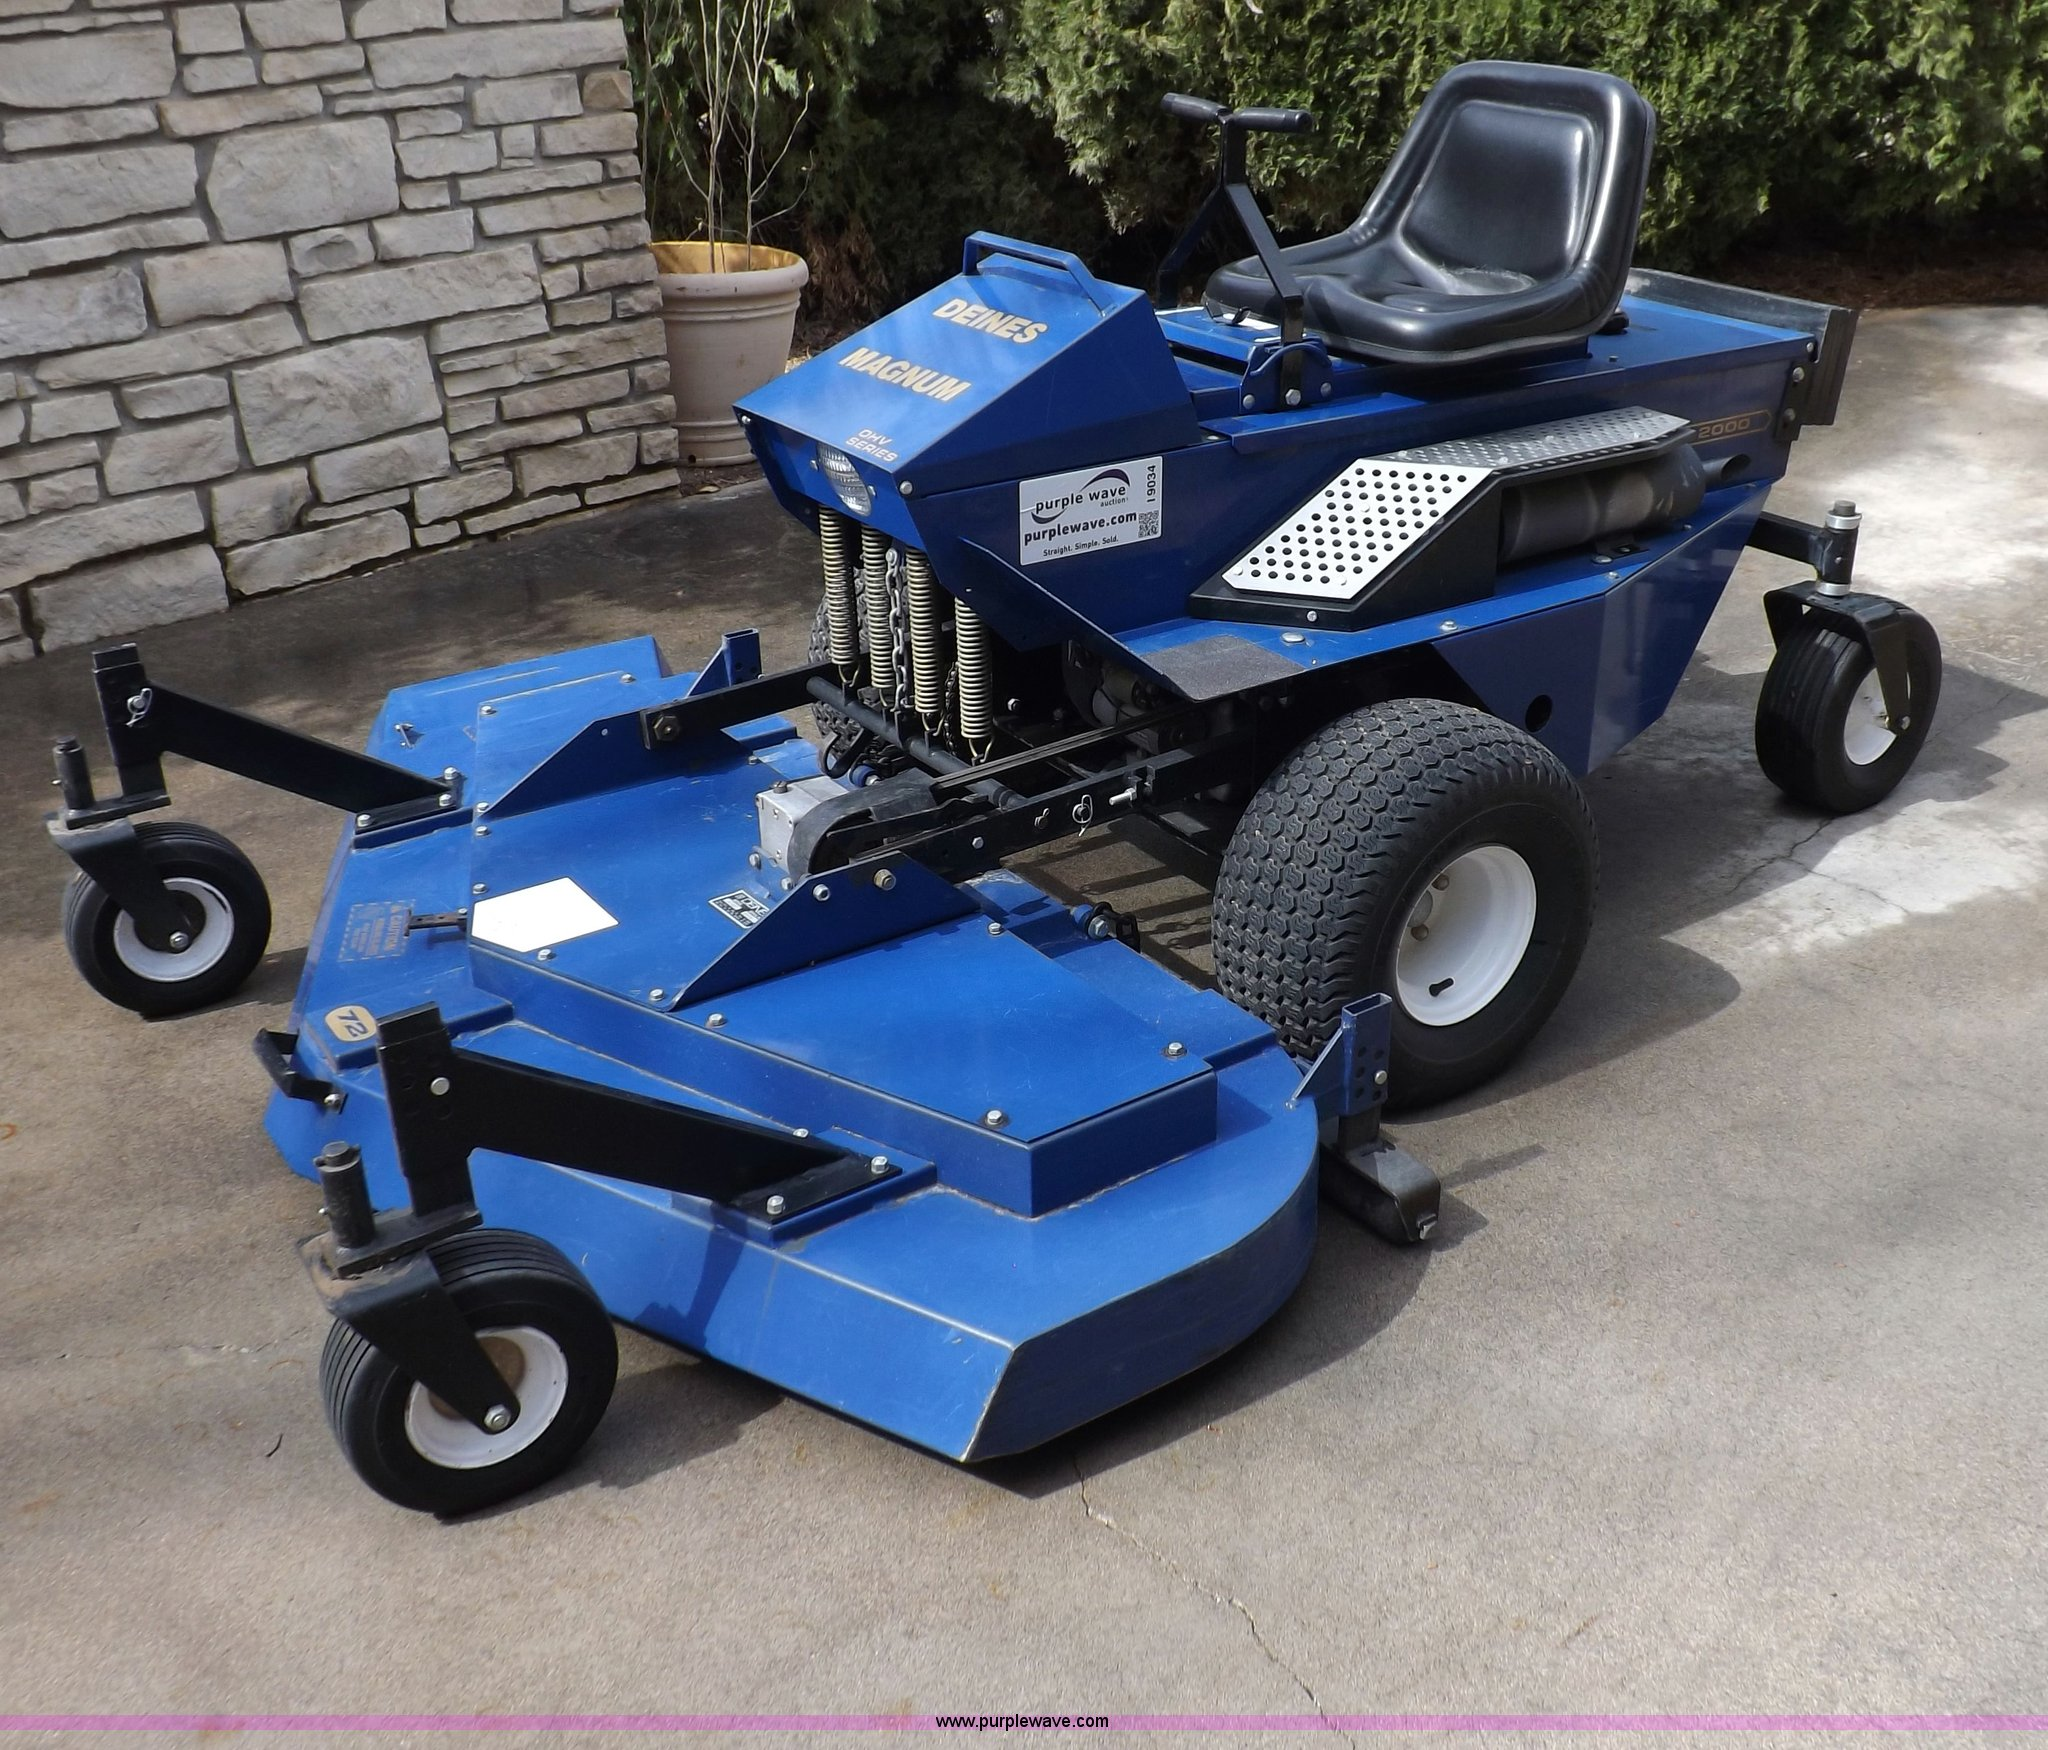 deines magnum ztr lawn mower item i9034 sold april 16 v rh purplewave com Deines Mower Diagram Deines Mower Diagram